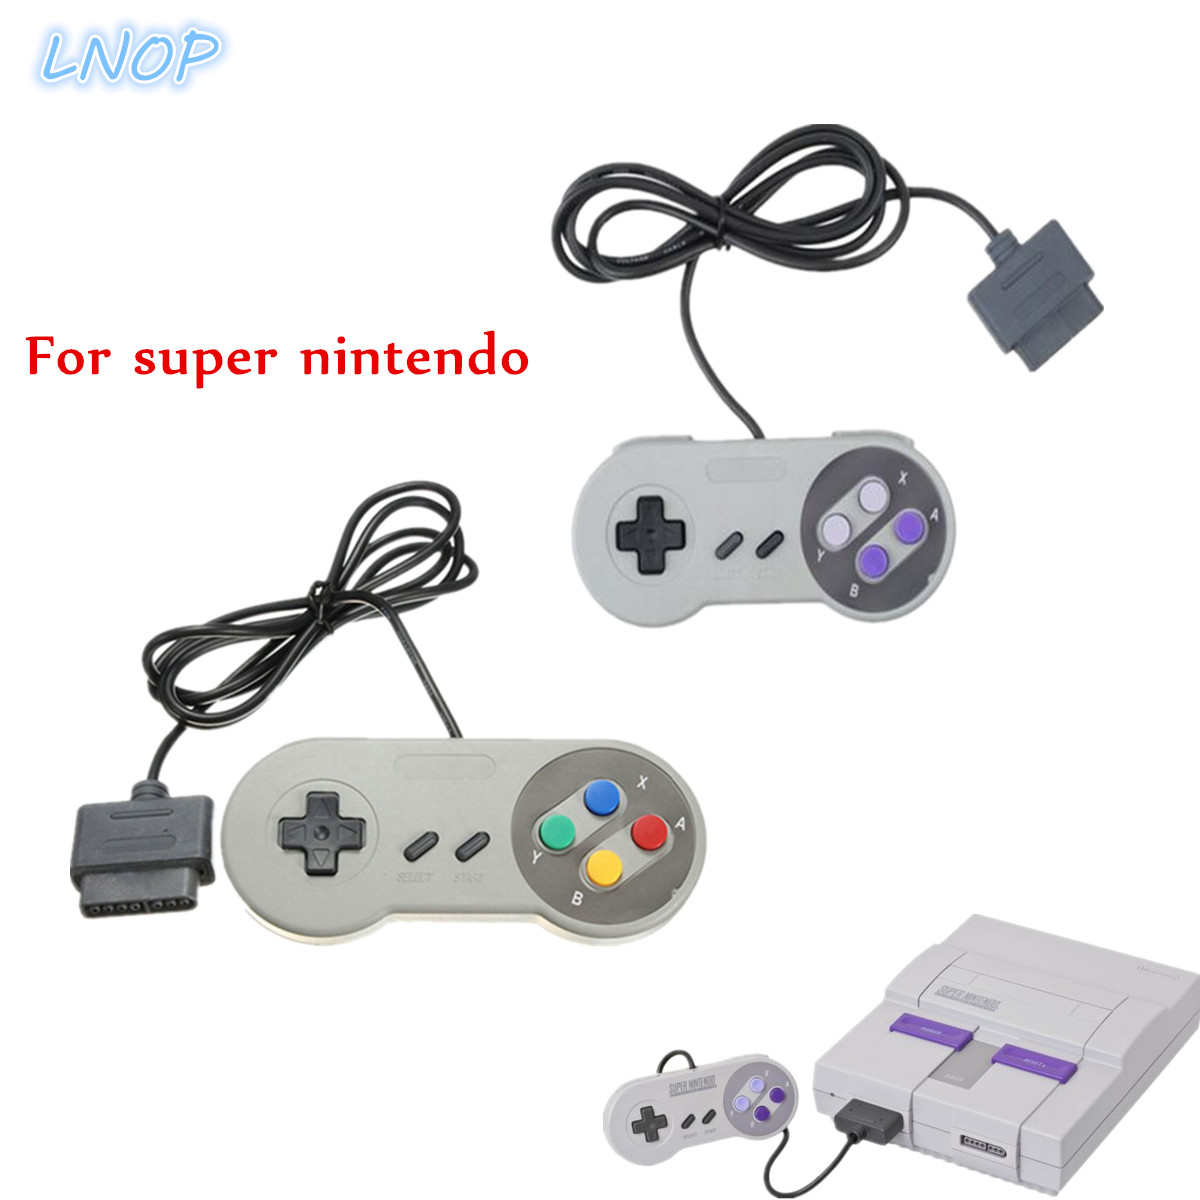 Wired gamdpad game controller joystick for super nintendo SFC/SNES console Classic portable video gaming gamepad